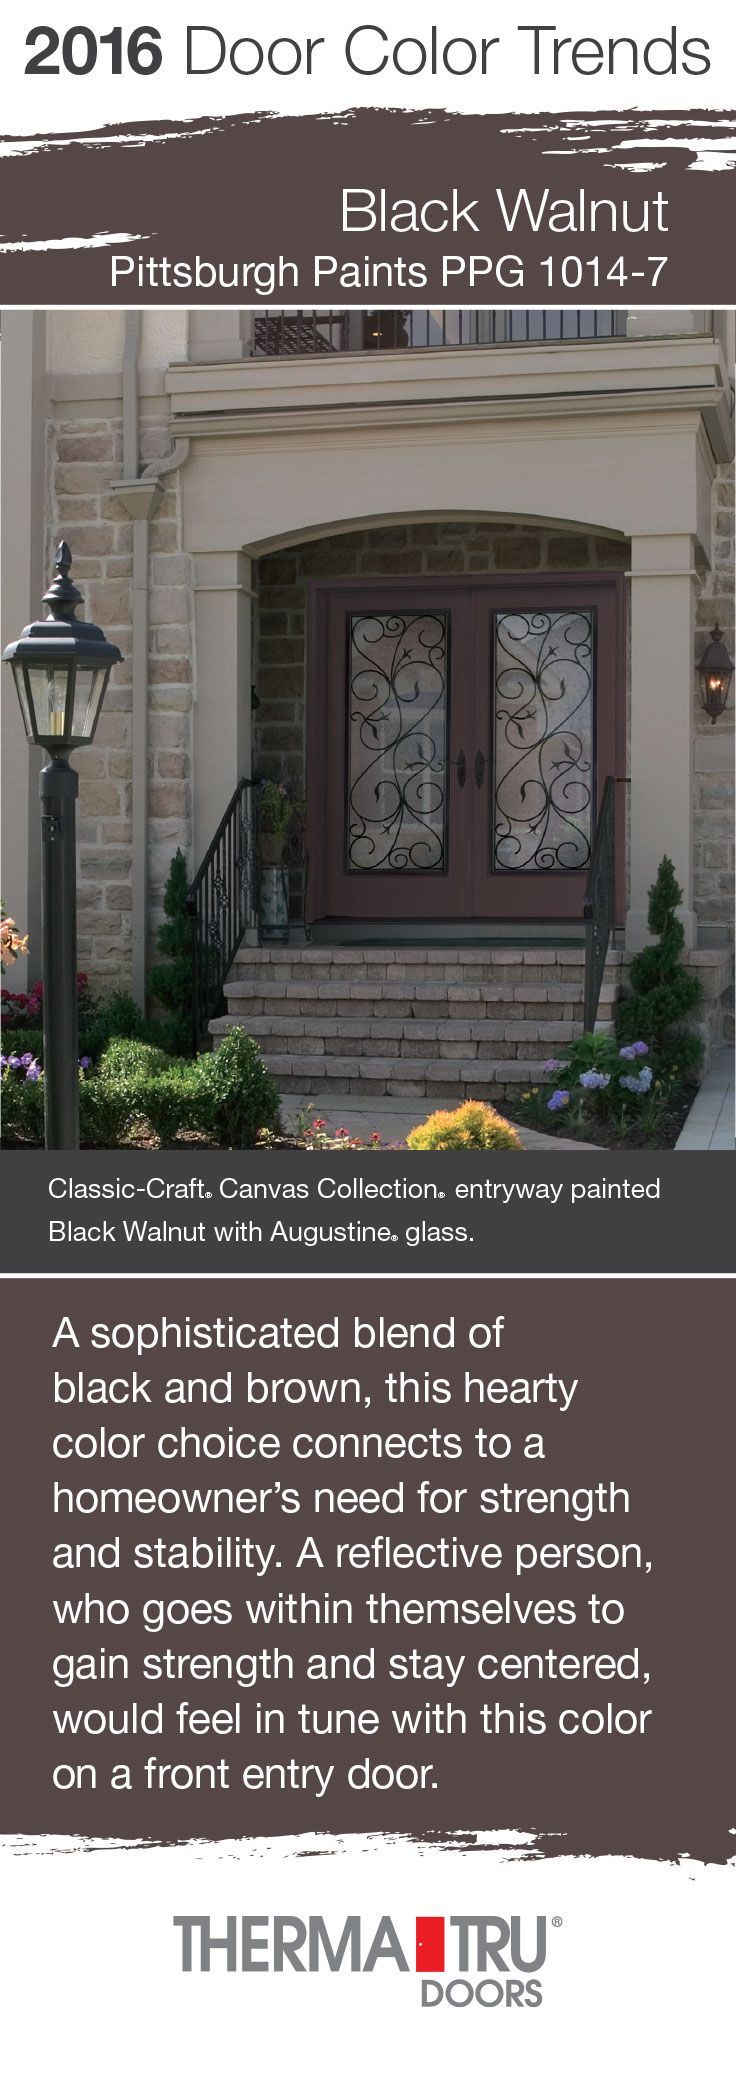 Front door with sidelites m6410 103010 ct 4irh the home depot - Black Walnut By Pittsburgh Paints One Of The Front Door Color Trends For 2016